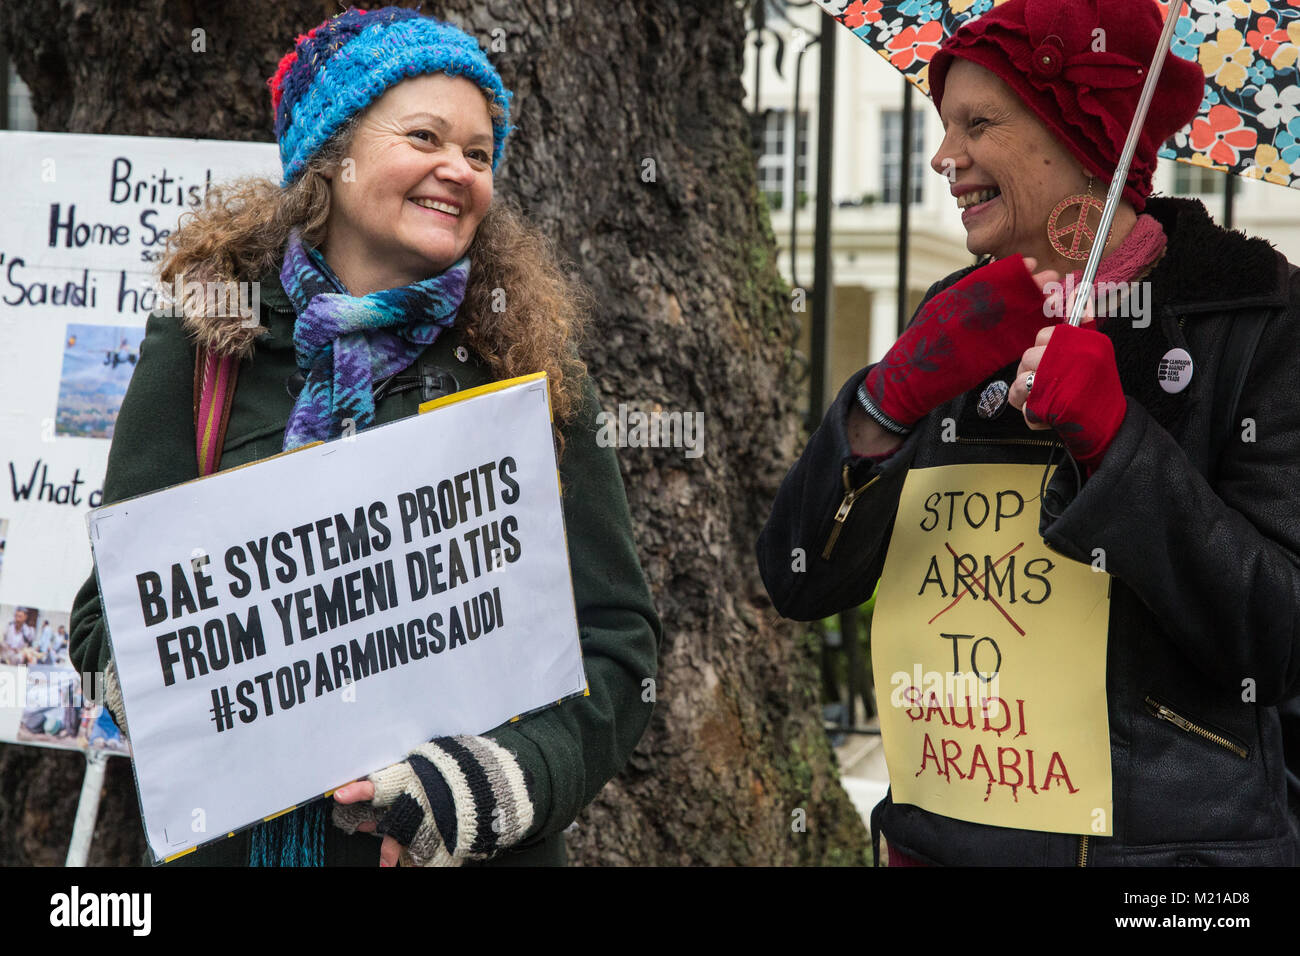 London, UK. 3rd February, 2018. Supporters of London Campaign Against The Arms Trade protest outside the Saudi Arabian - Stock Image